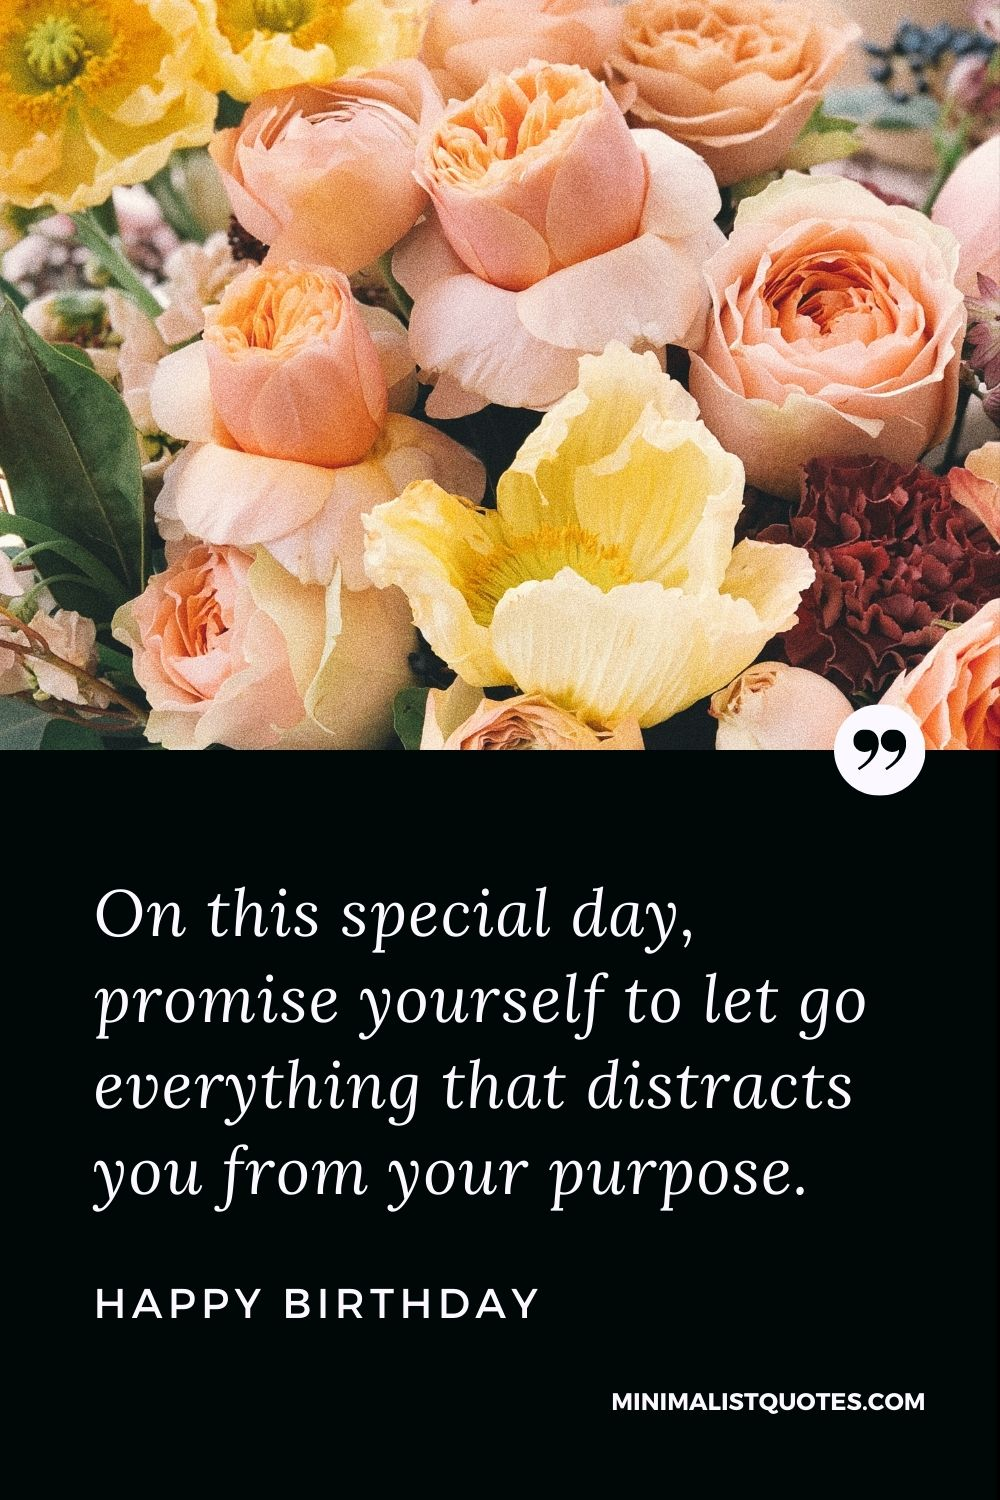 Happy Birthday Wishes - On this special day, promise yourself to let go everything that distracts you from your purpose.